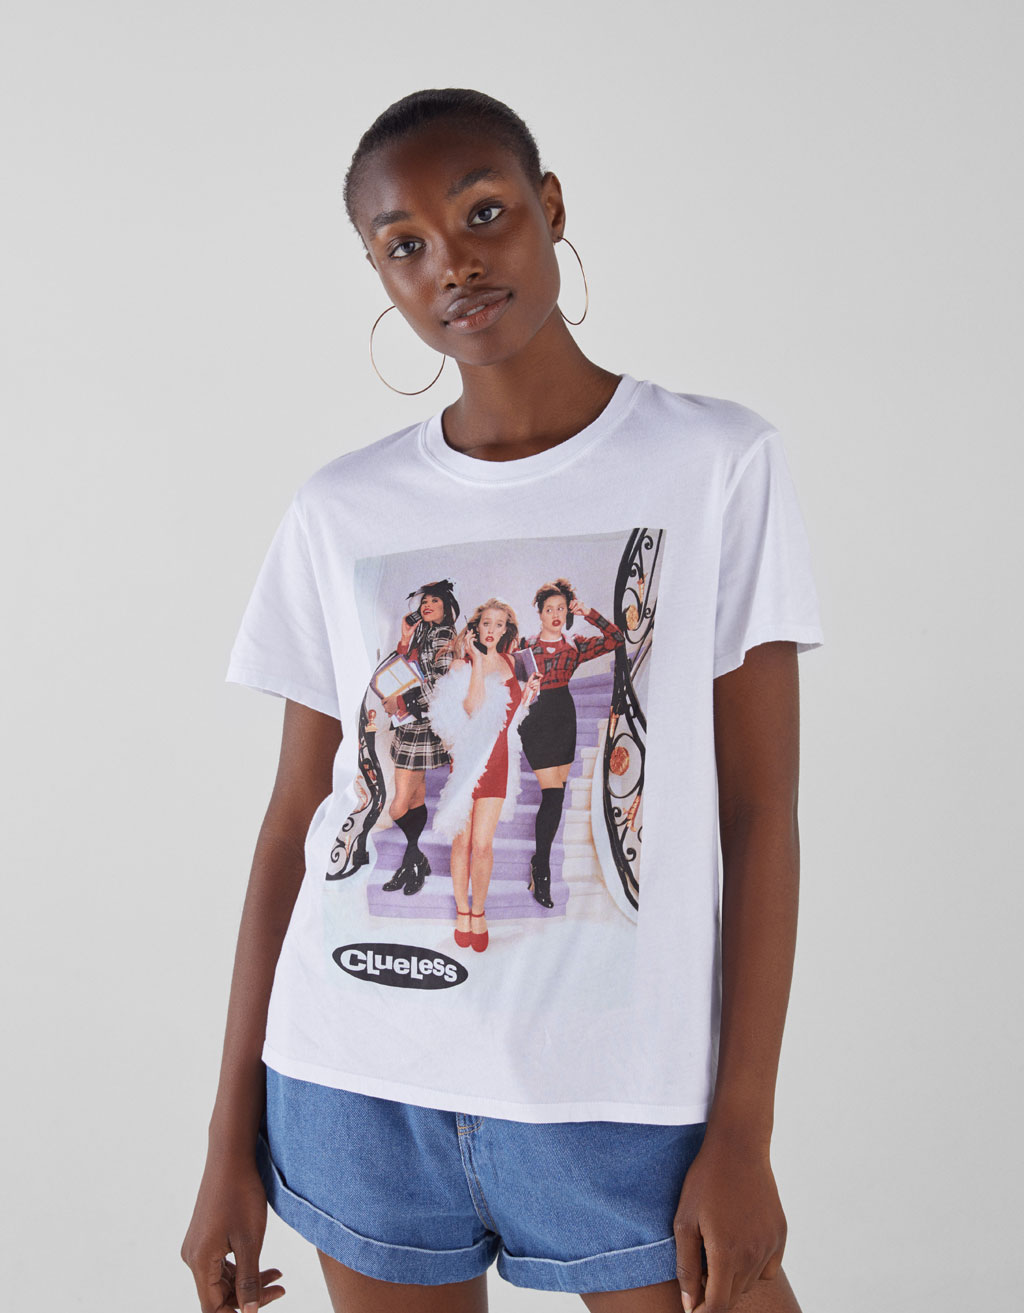 Join Life Clueless t-shirt